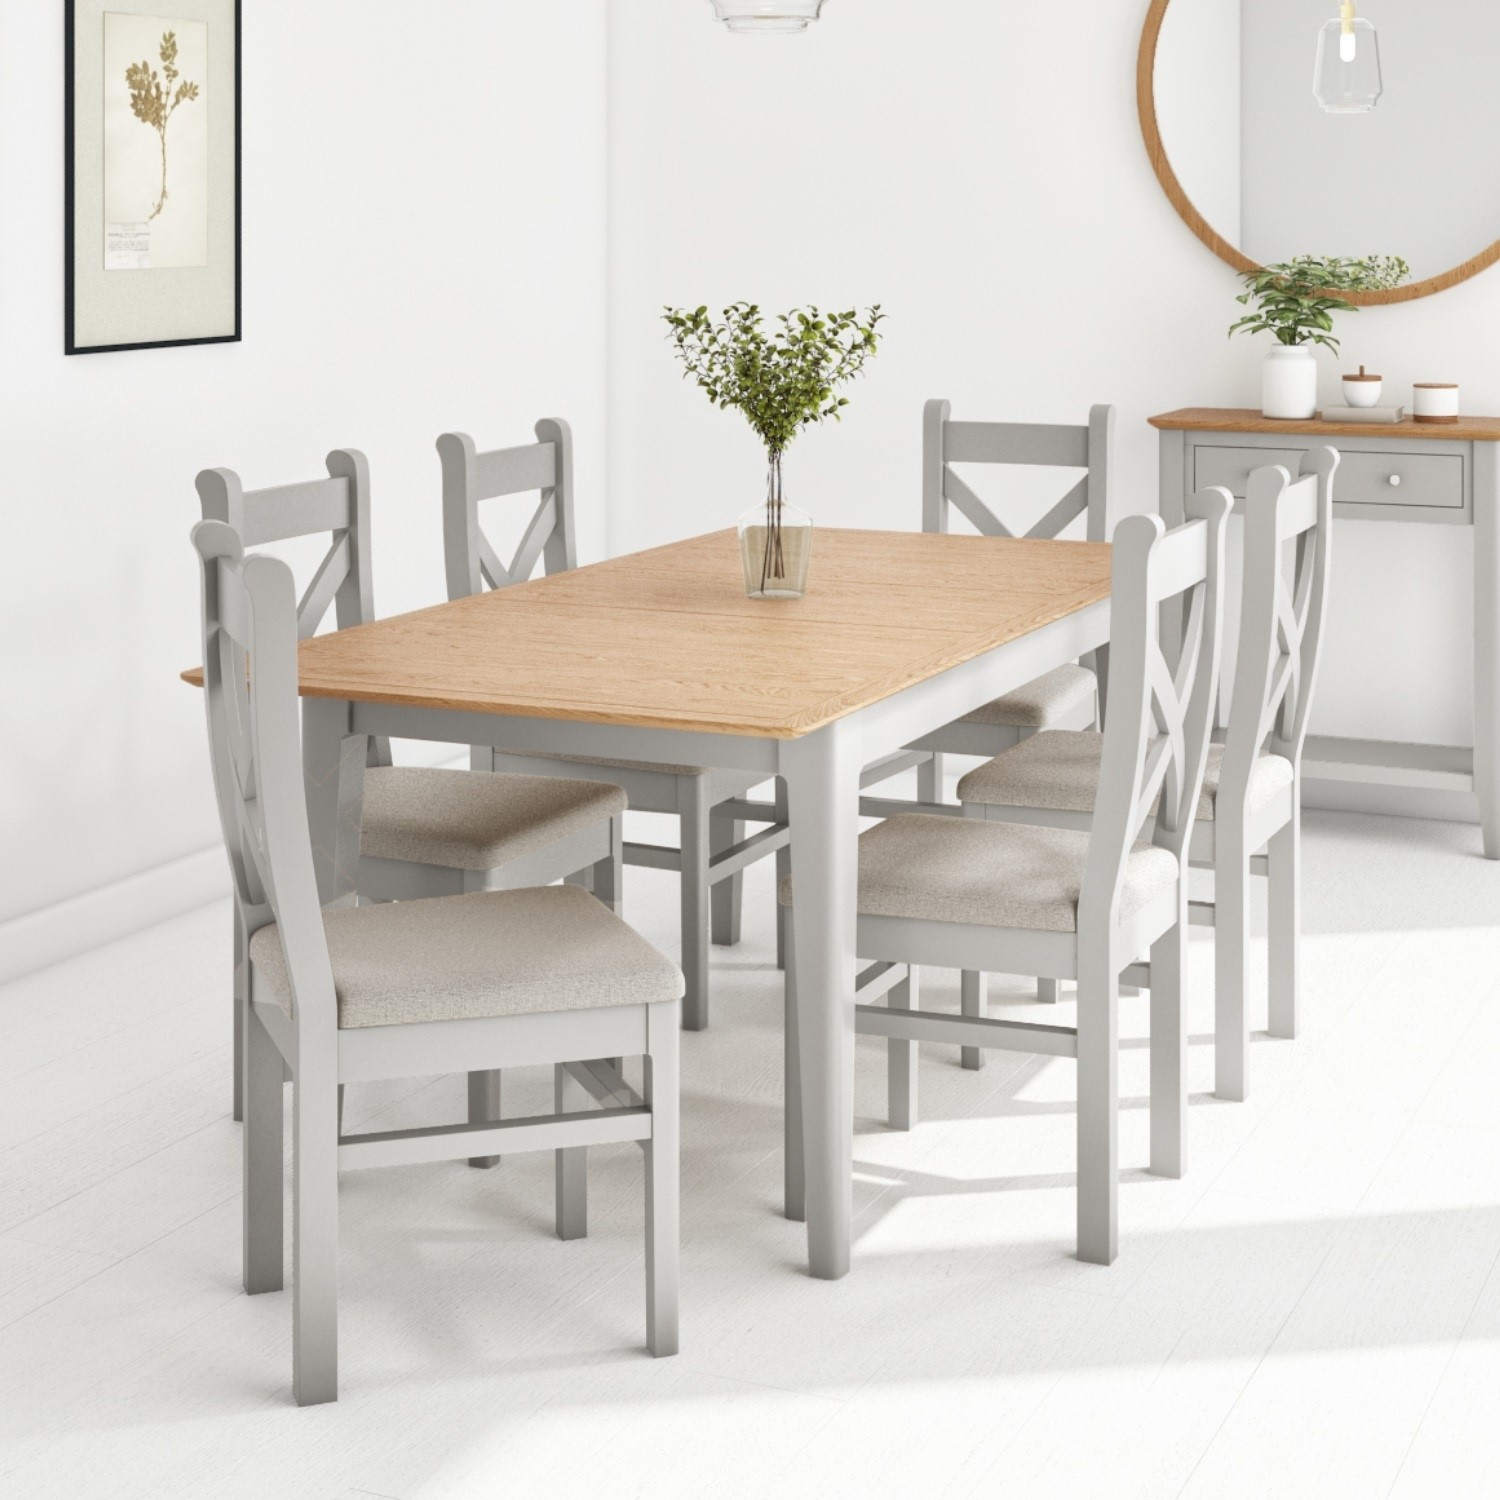 Extendable Dining Table 6 Chairs In, A Dining Room Table With 6 Chairs